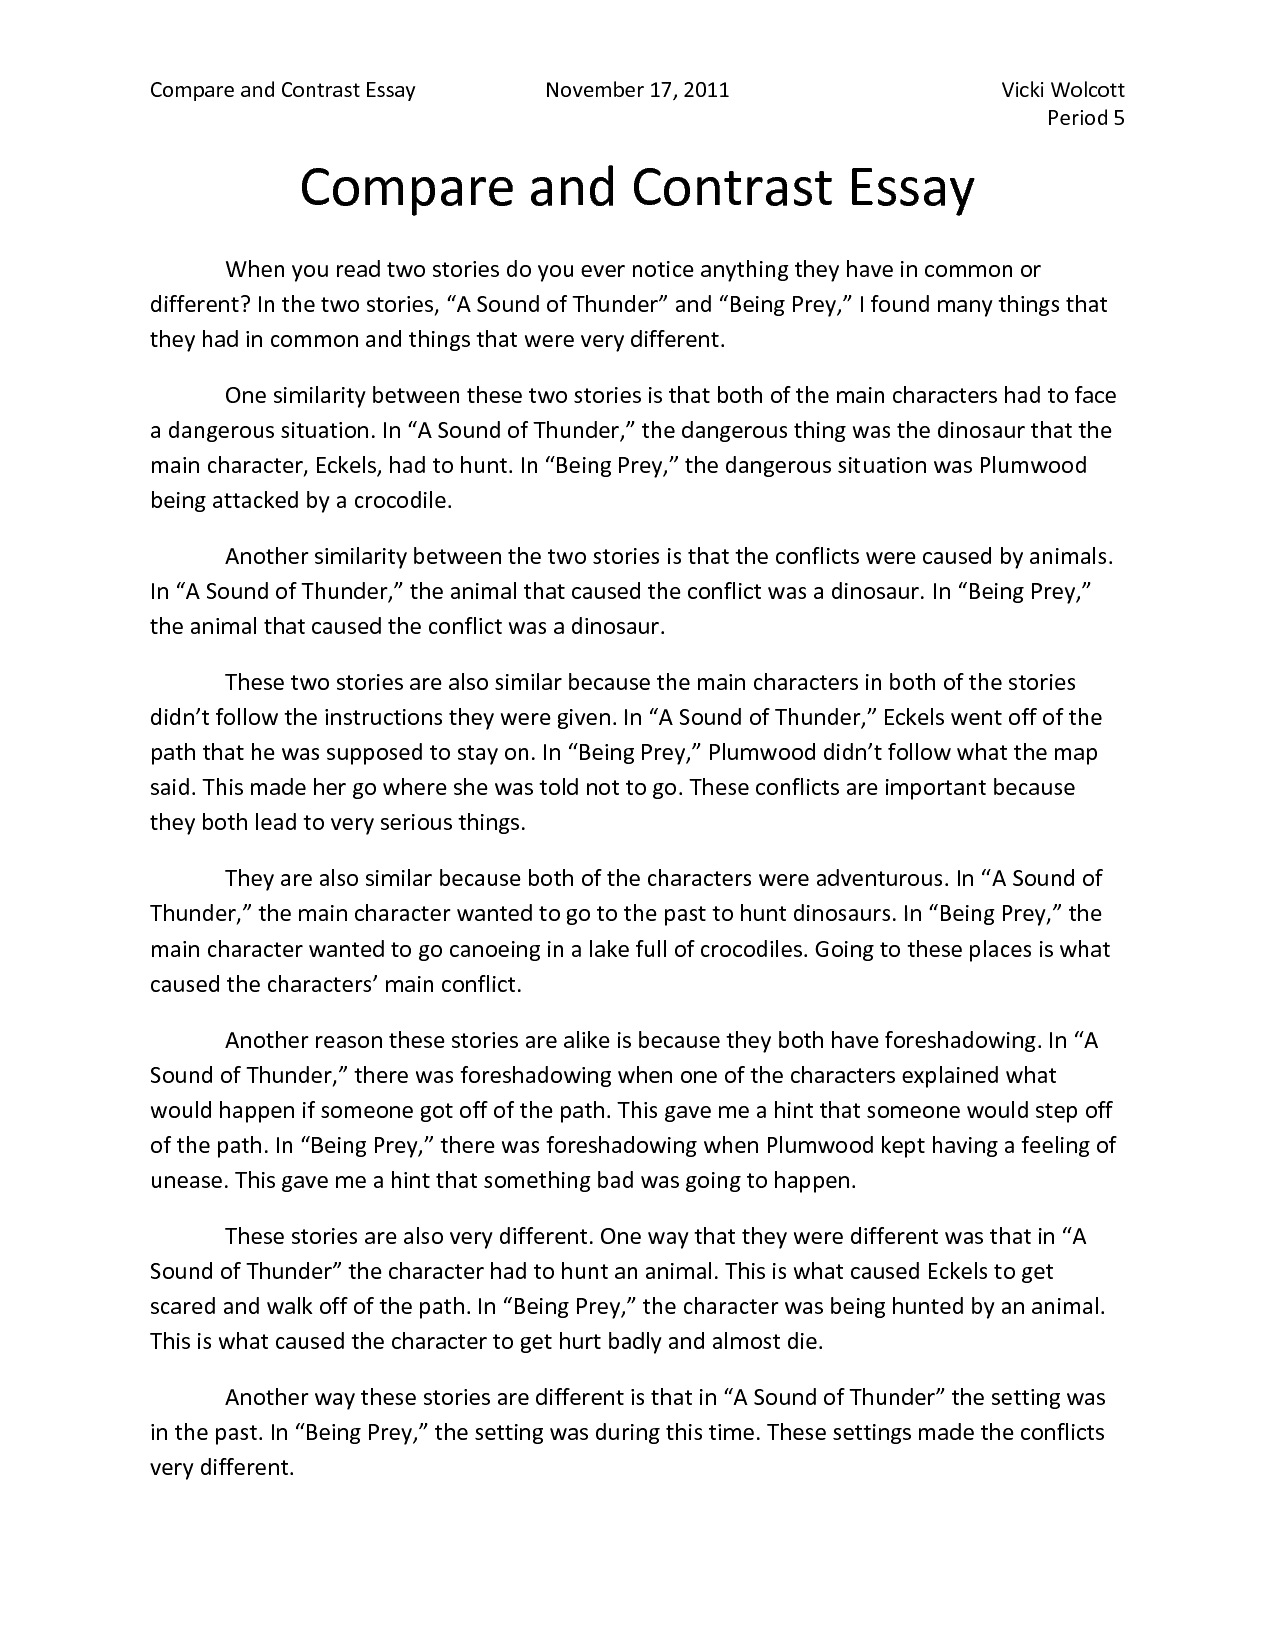 comparison and contrast essay help There is something every student should consider before trying to understand how to write a compare and contrast essay learn how to choose a topic smartly.